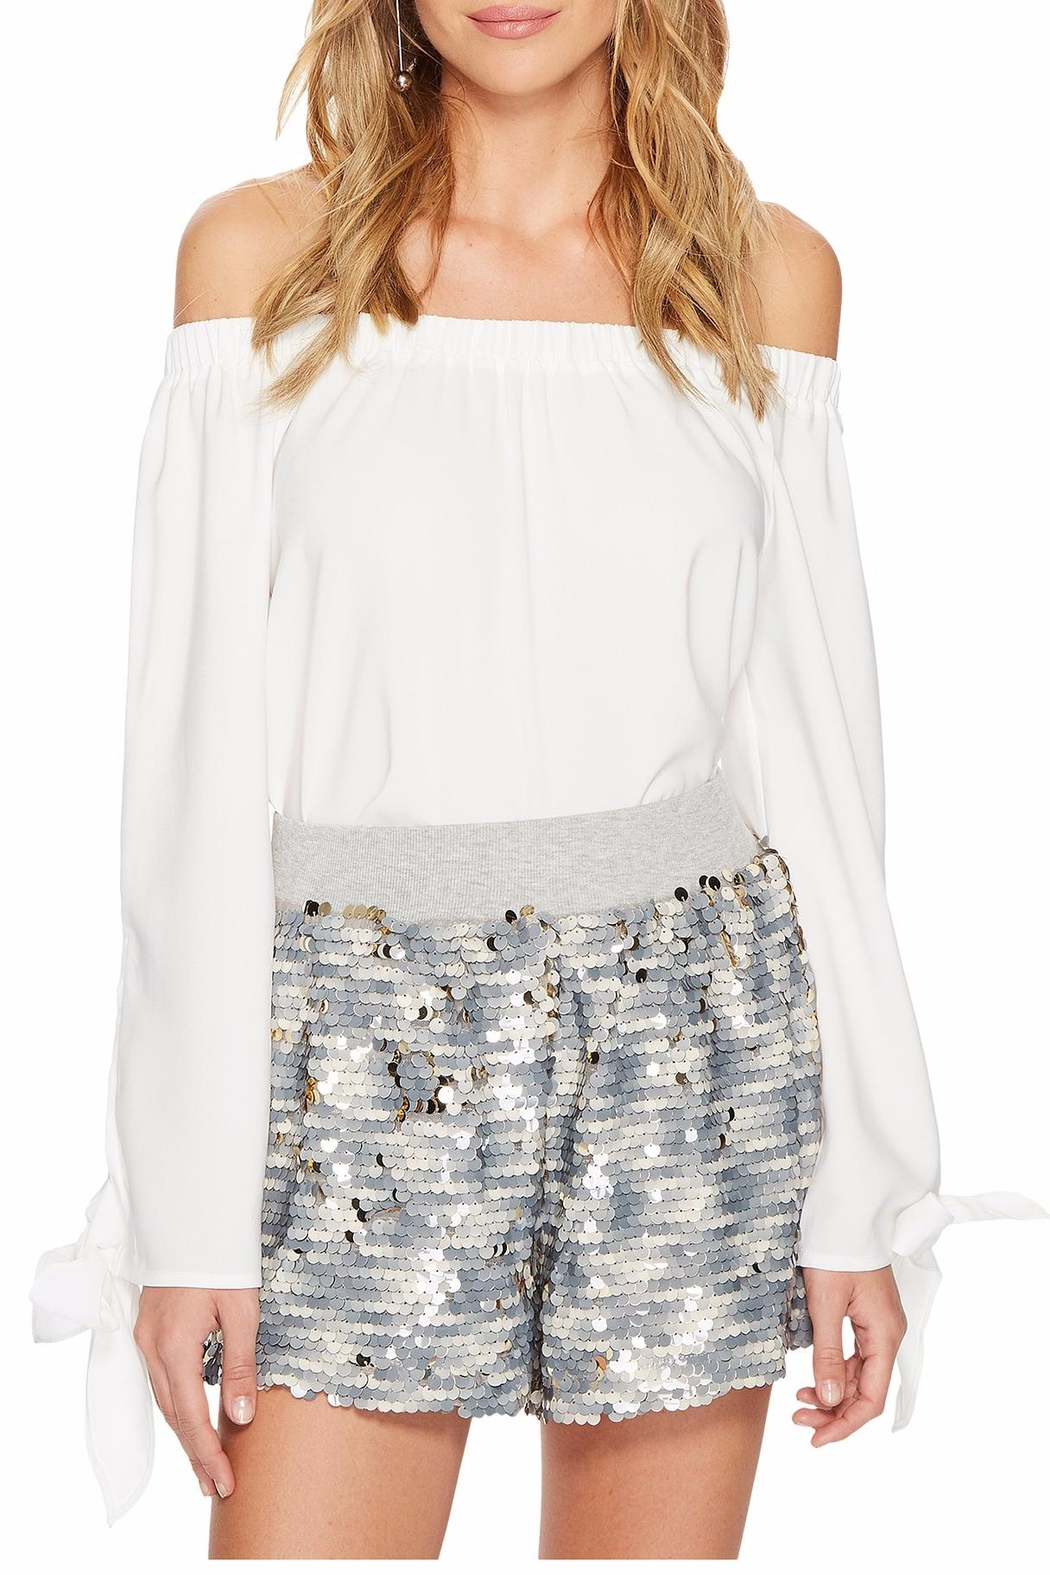 Bishop + Young Avery Bare Shoulder Top - Front Cropped Image